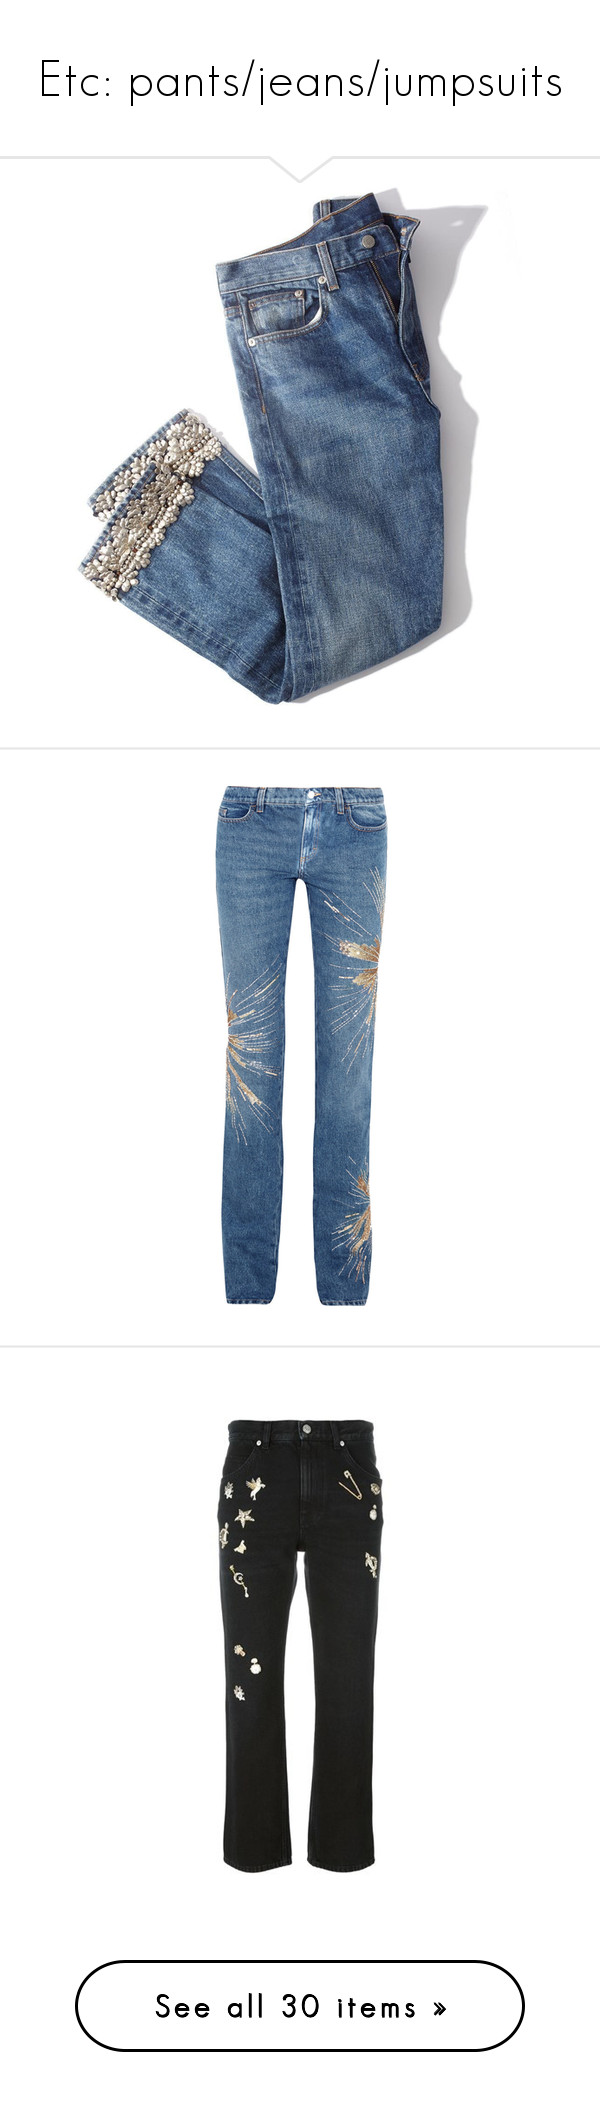 """""""Etc: pants/jeans/jumpsuits"""" by evalevmar ❤ liked on Polyvore featuring jeans, bottoms, denim, pants, trousers, blue, embellished jeans, straight leg jeans, blue jeans and silver jeans"""